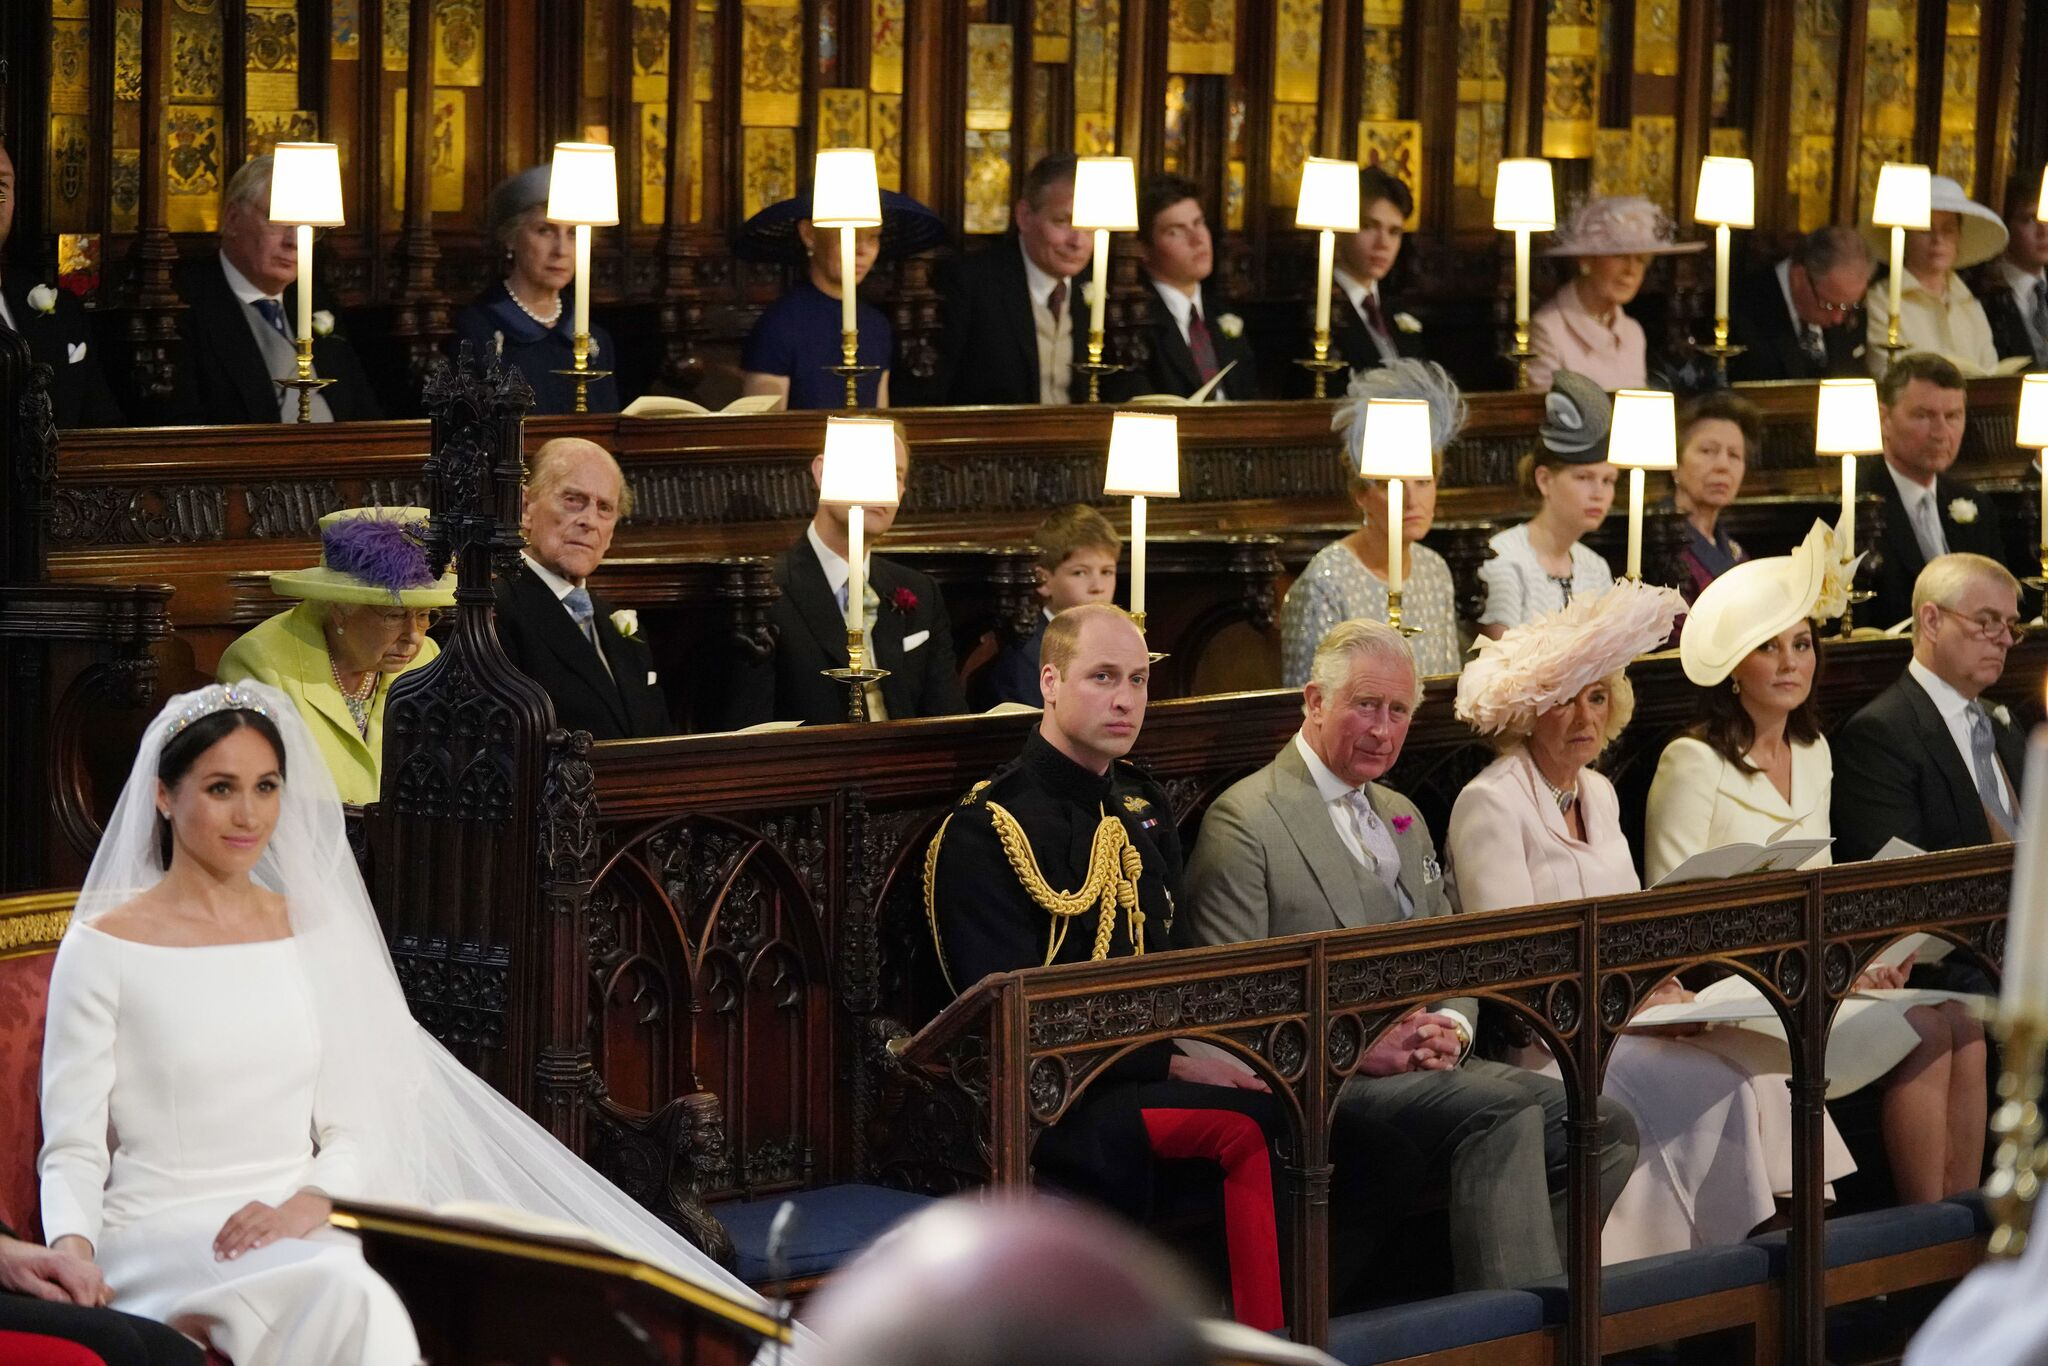 Empty seatt next to Prince William at royal wedding | Getty Images